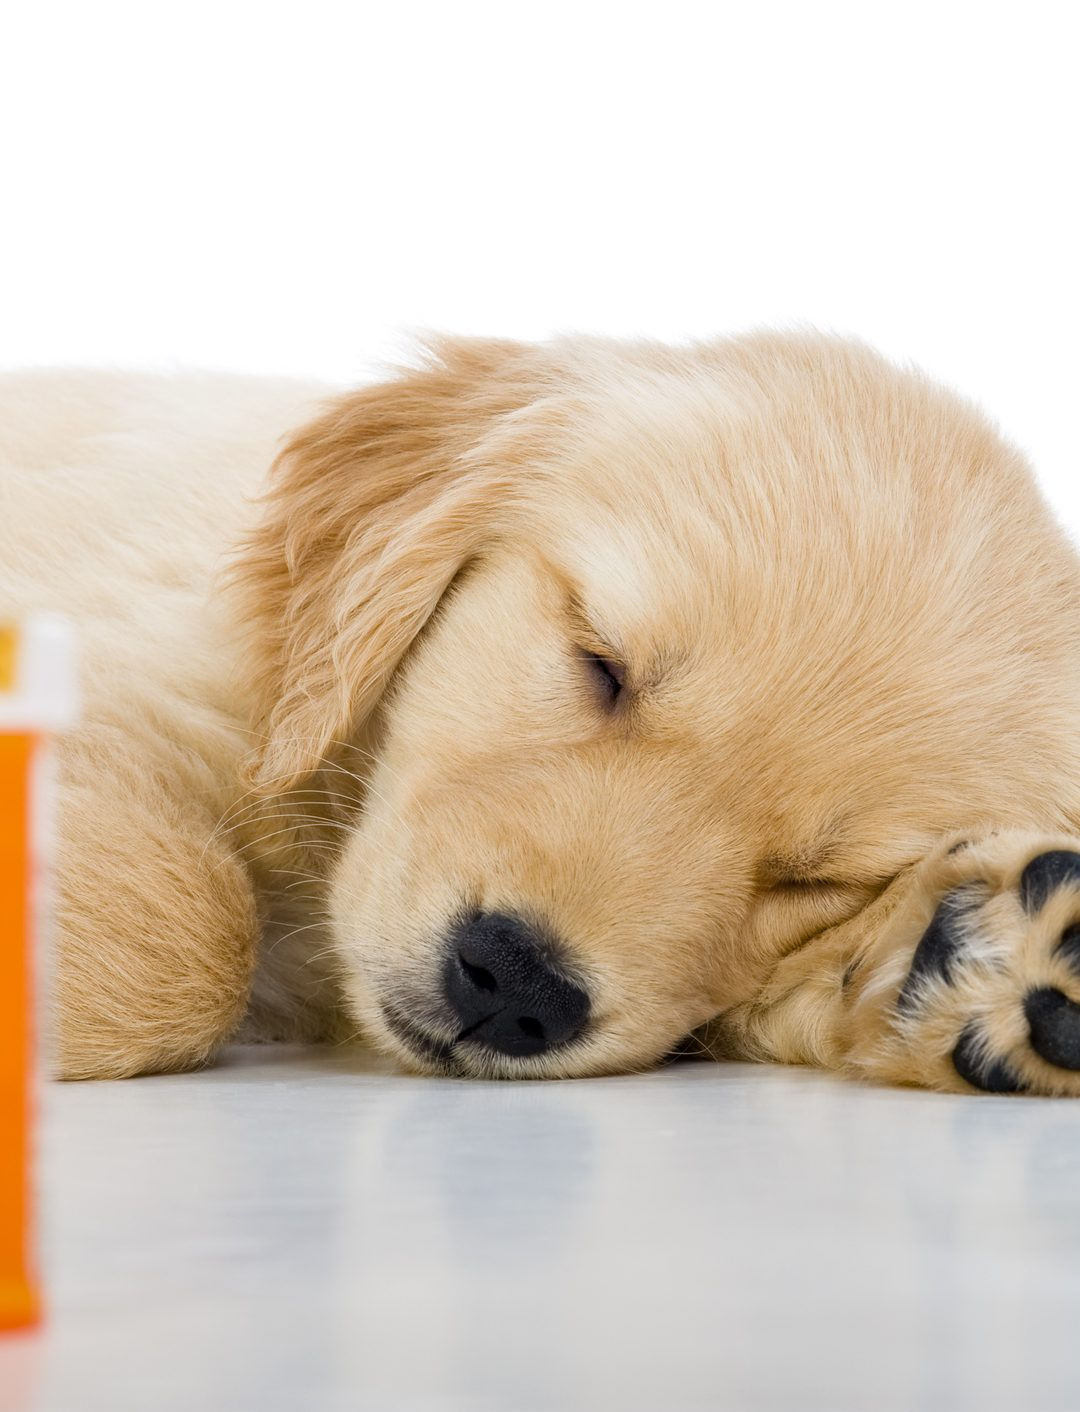 Are Supplements Good For Dogs?